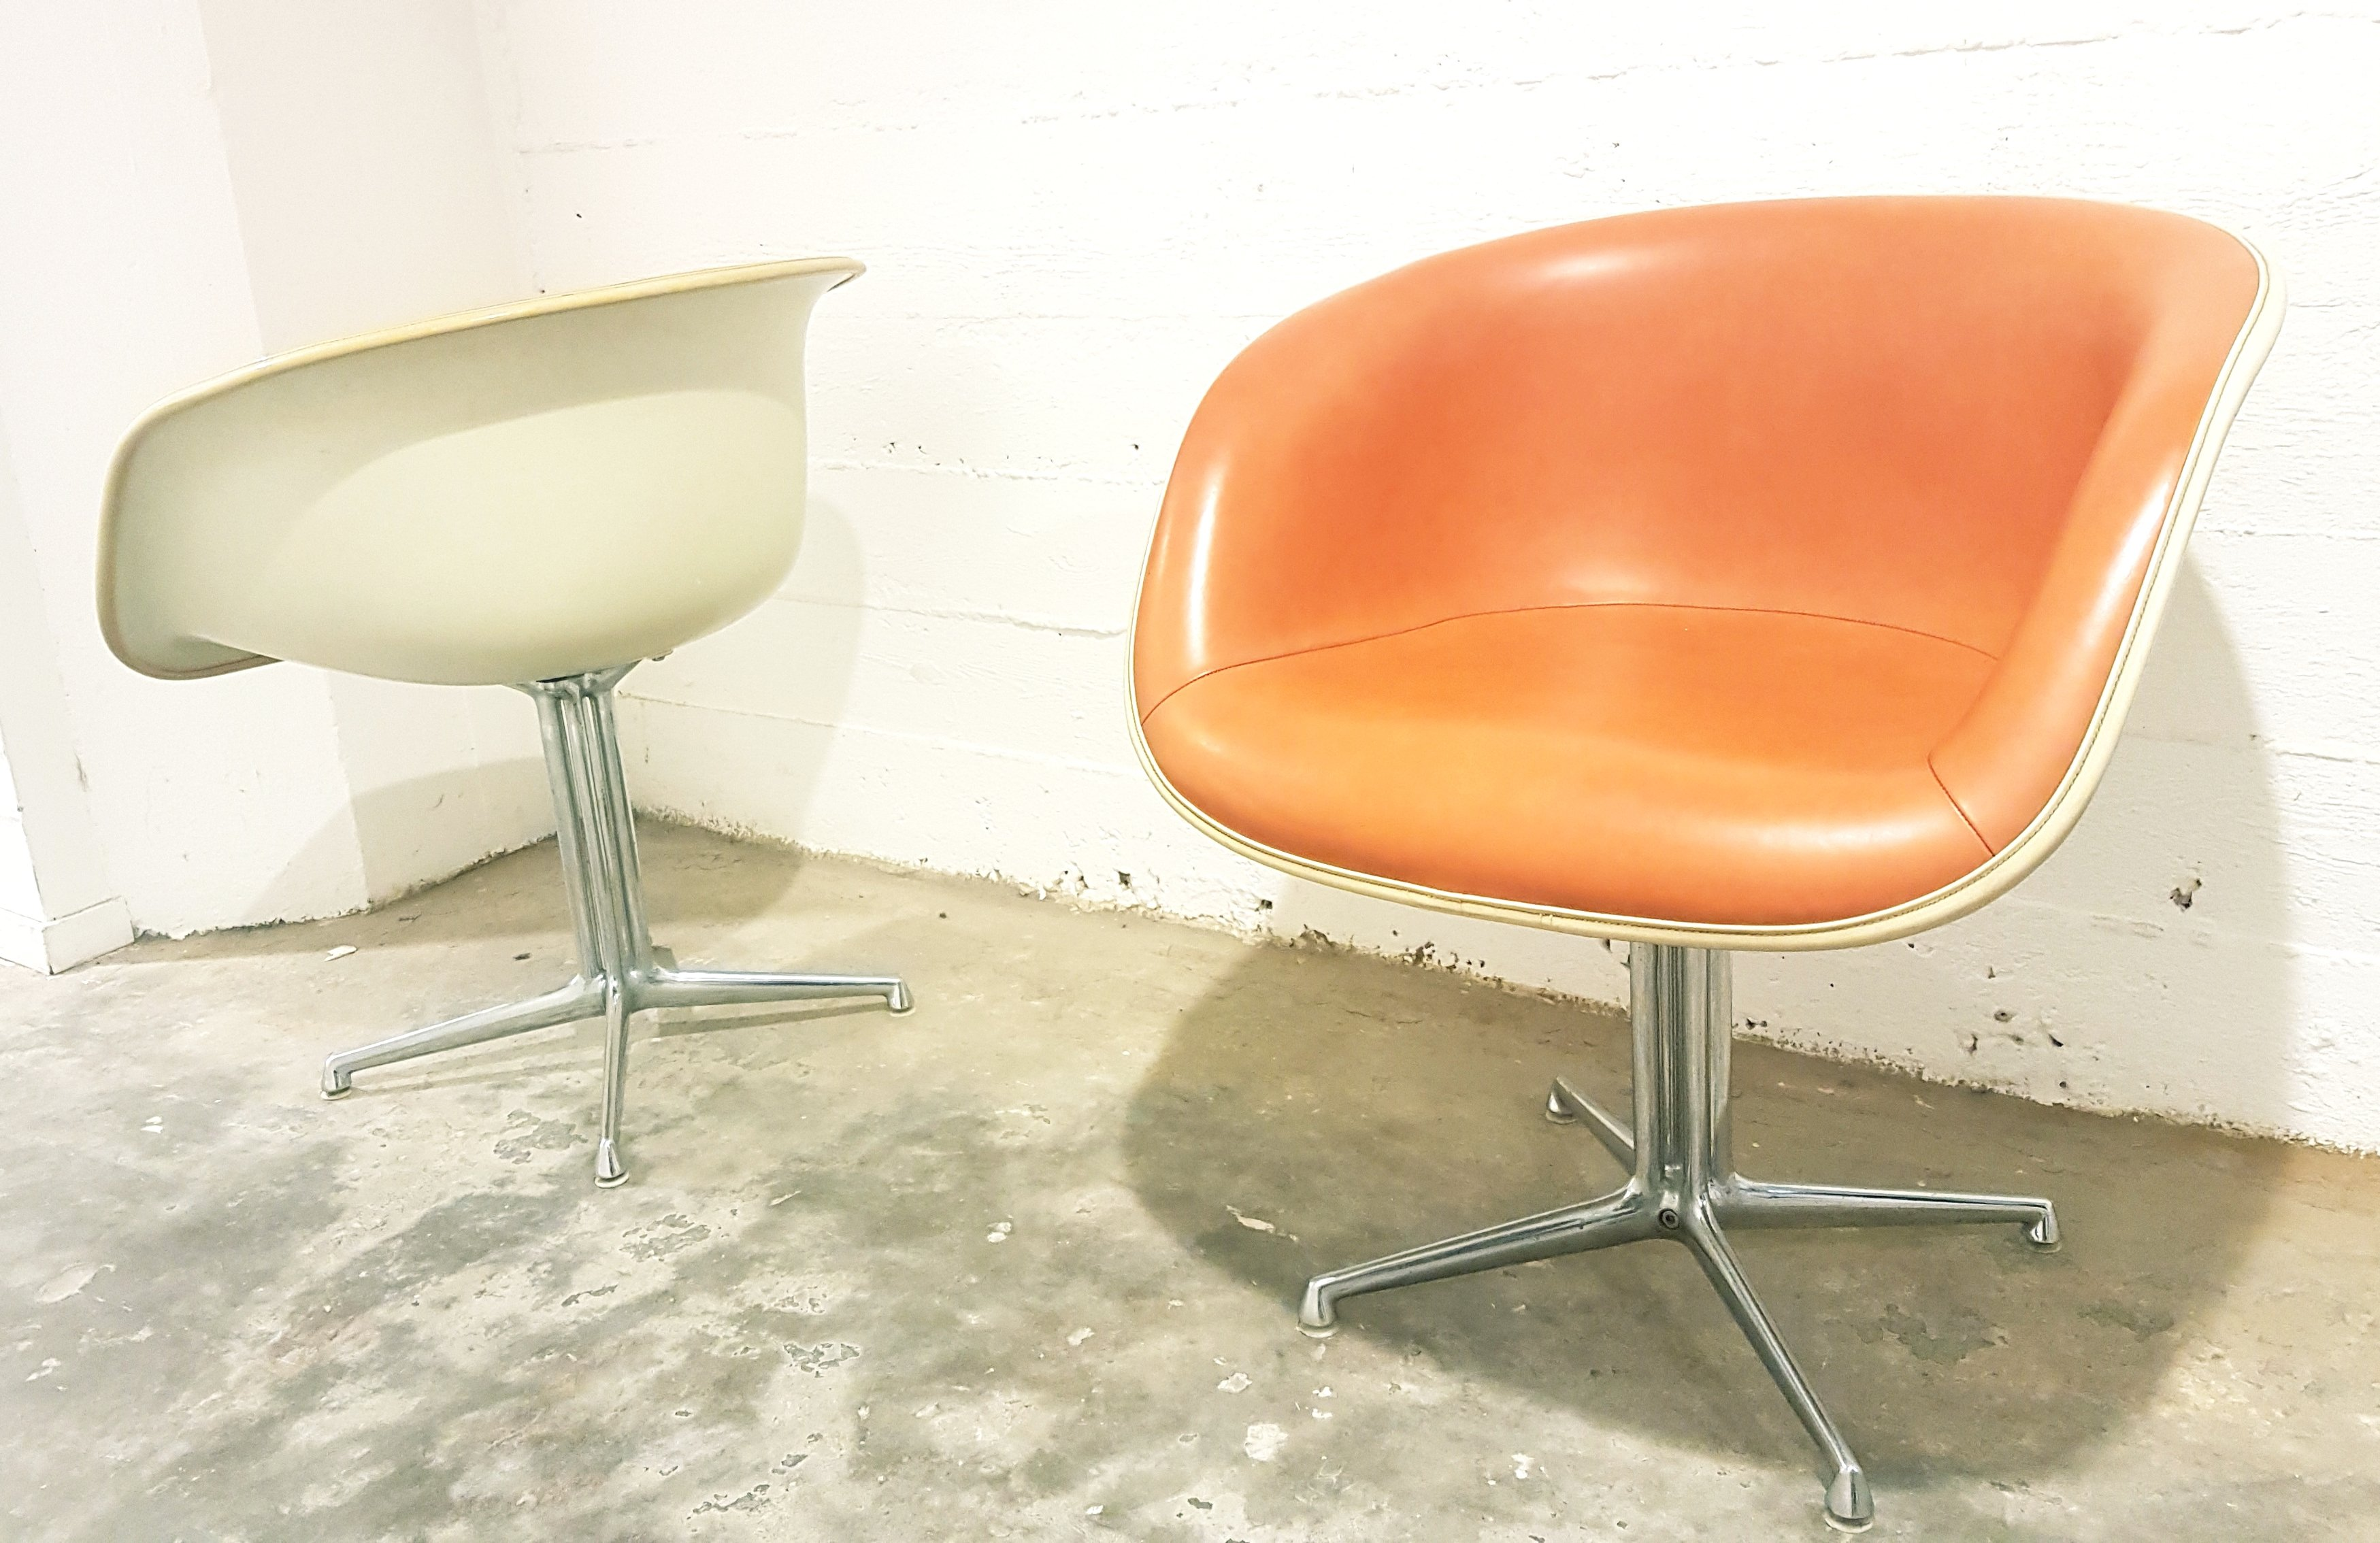 Vintage Pair Of La Fonda Chairs By Charles Ray Eames For Herman Miller 128210